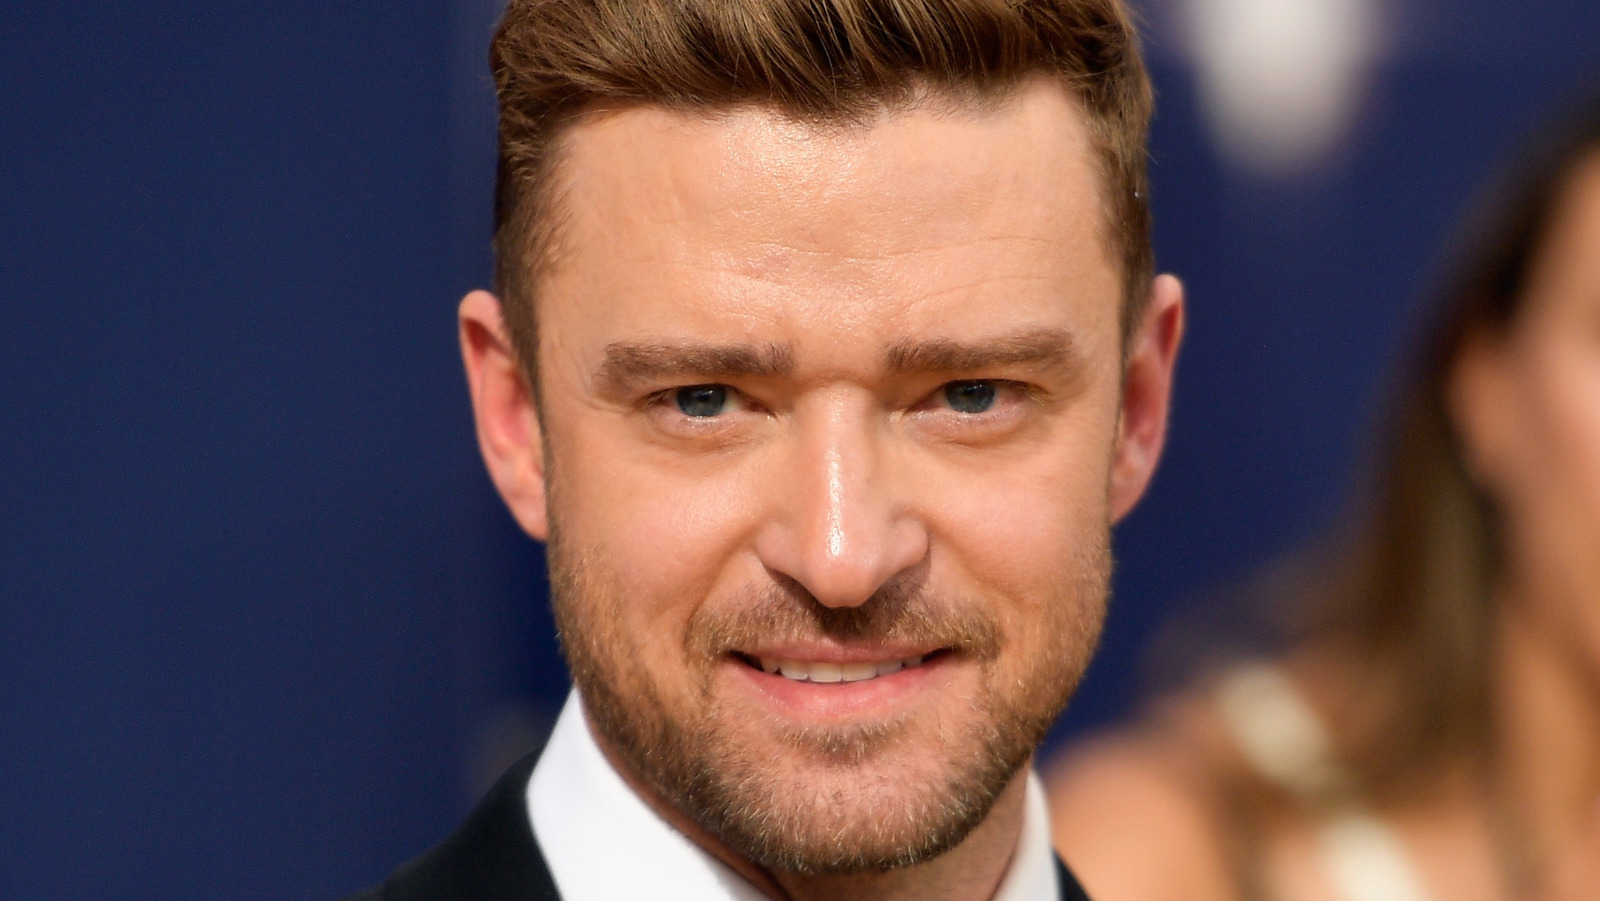 What Justin Timberlake Just Referred To Jessica Biel As On Her Birthday.jpg